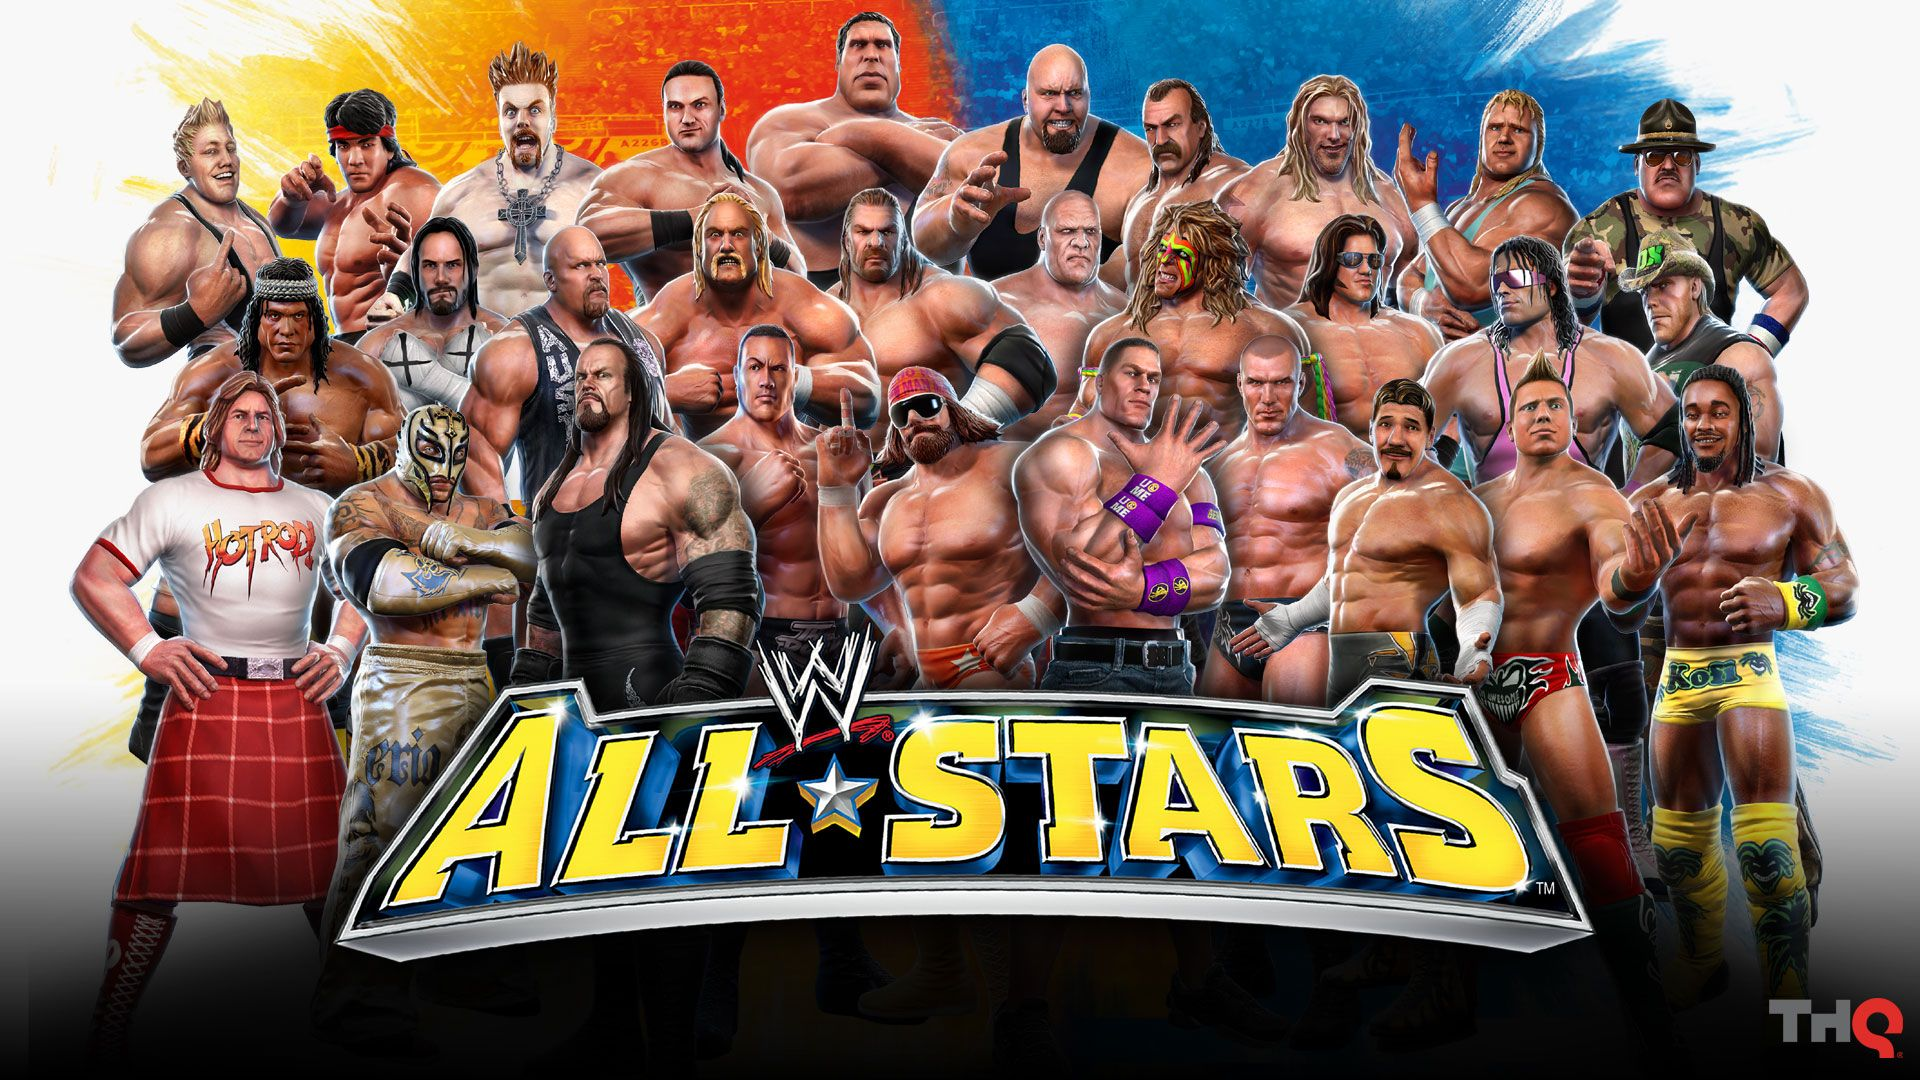 Wwe All Stars Roster I Remember I Had This As My Wallpaper For Ages Wrestling Games Wwe Wallpapers Wwe Game